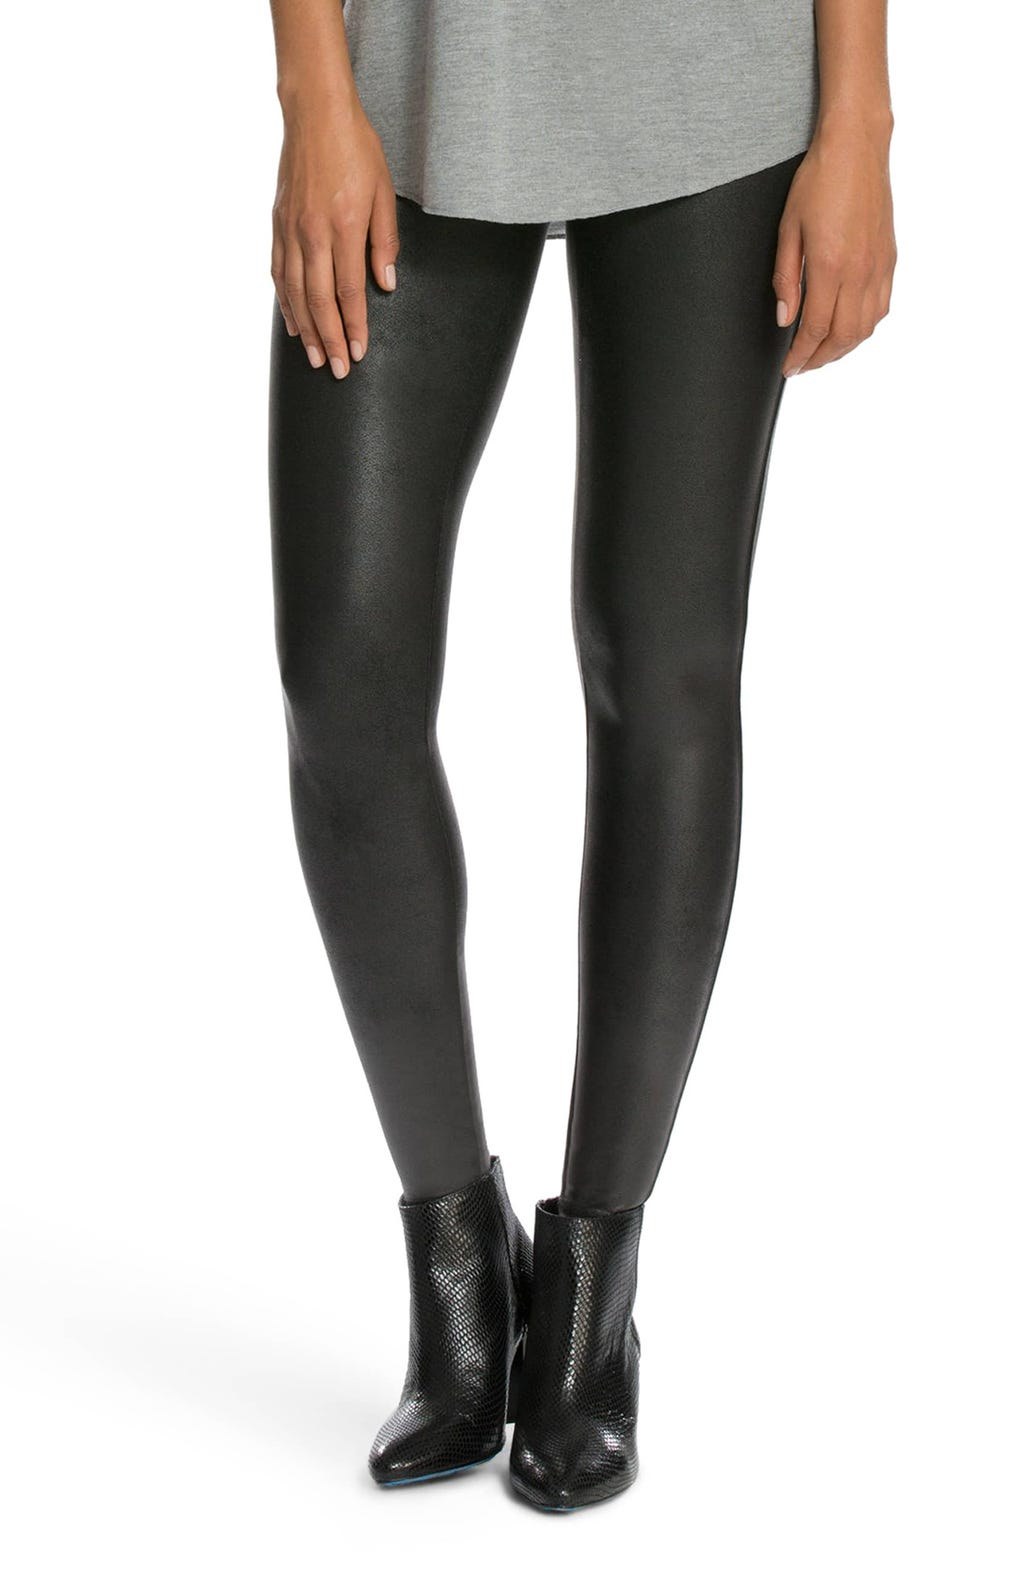 Wholesale Tights Manufacturers Best Black Leggings Reviews On Top Brands Styles